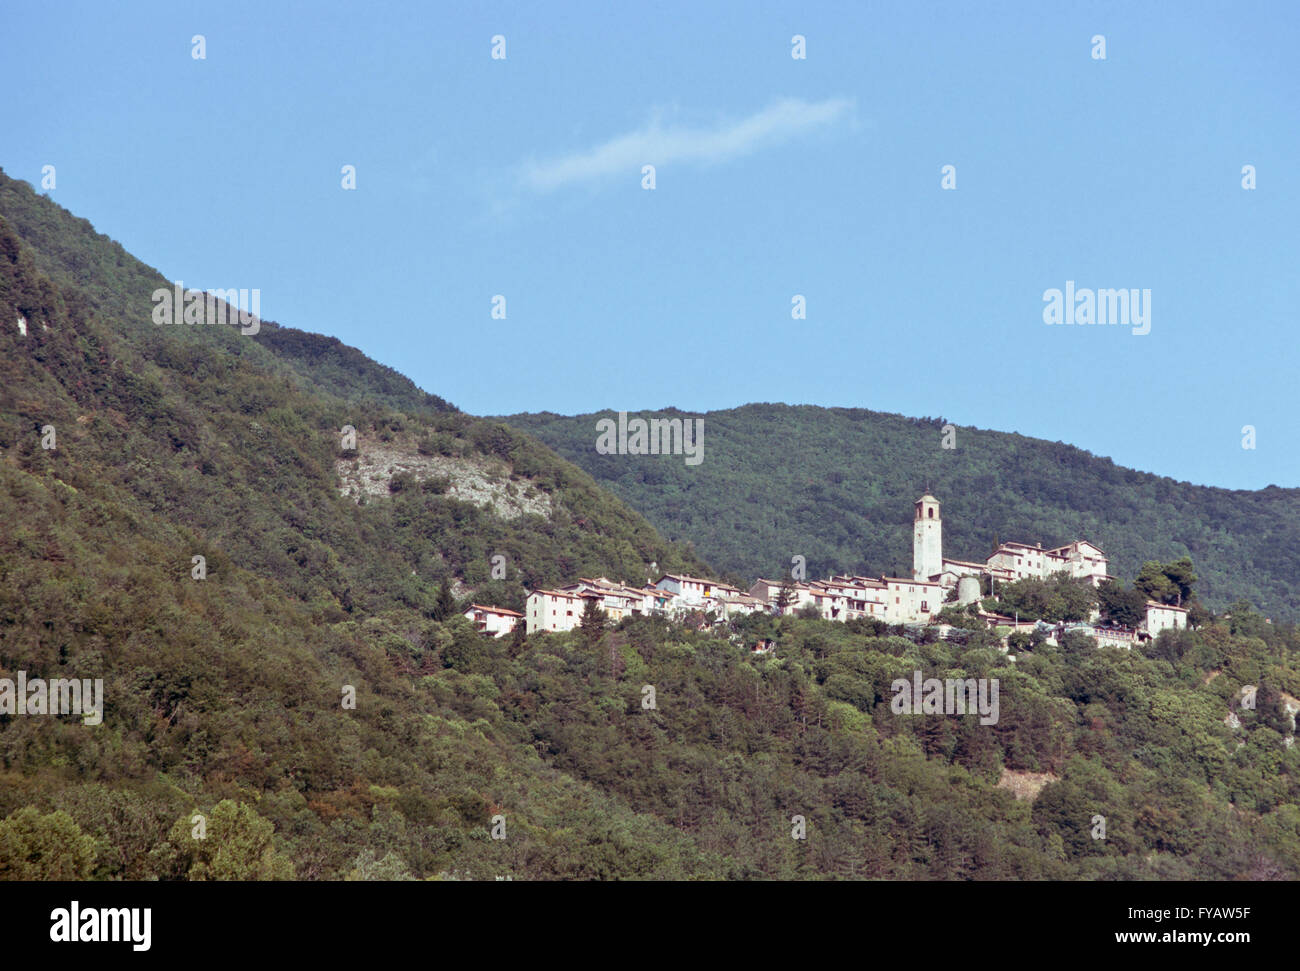 Panorama with Greccio, Italian medieval hill town - Stock Image